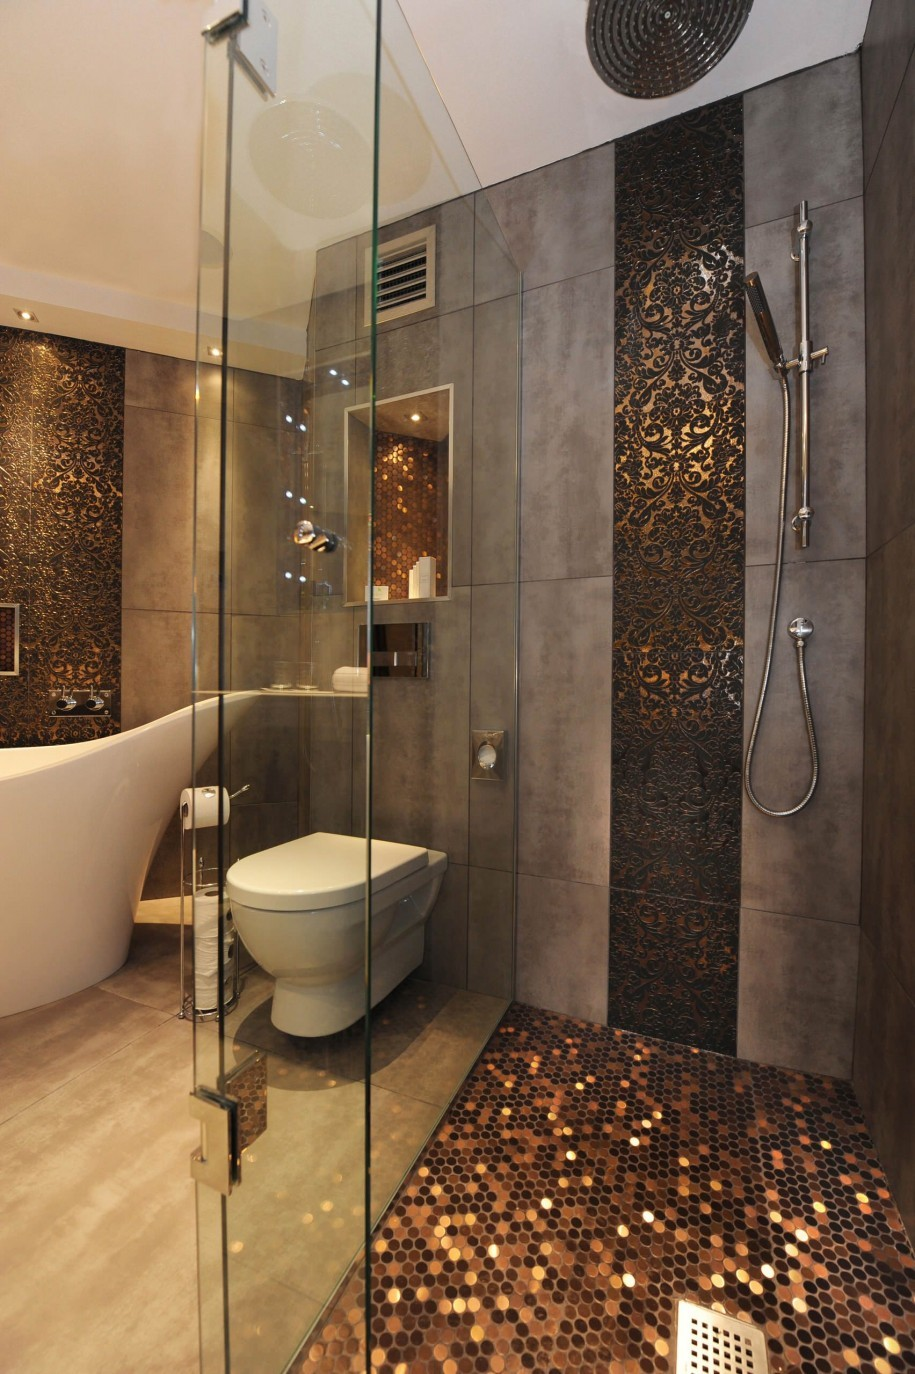 Award winning bathroom designs 2016 - 2 Luxury In A Limited Space